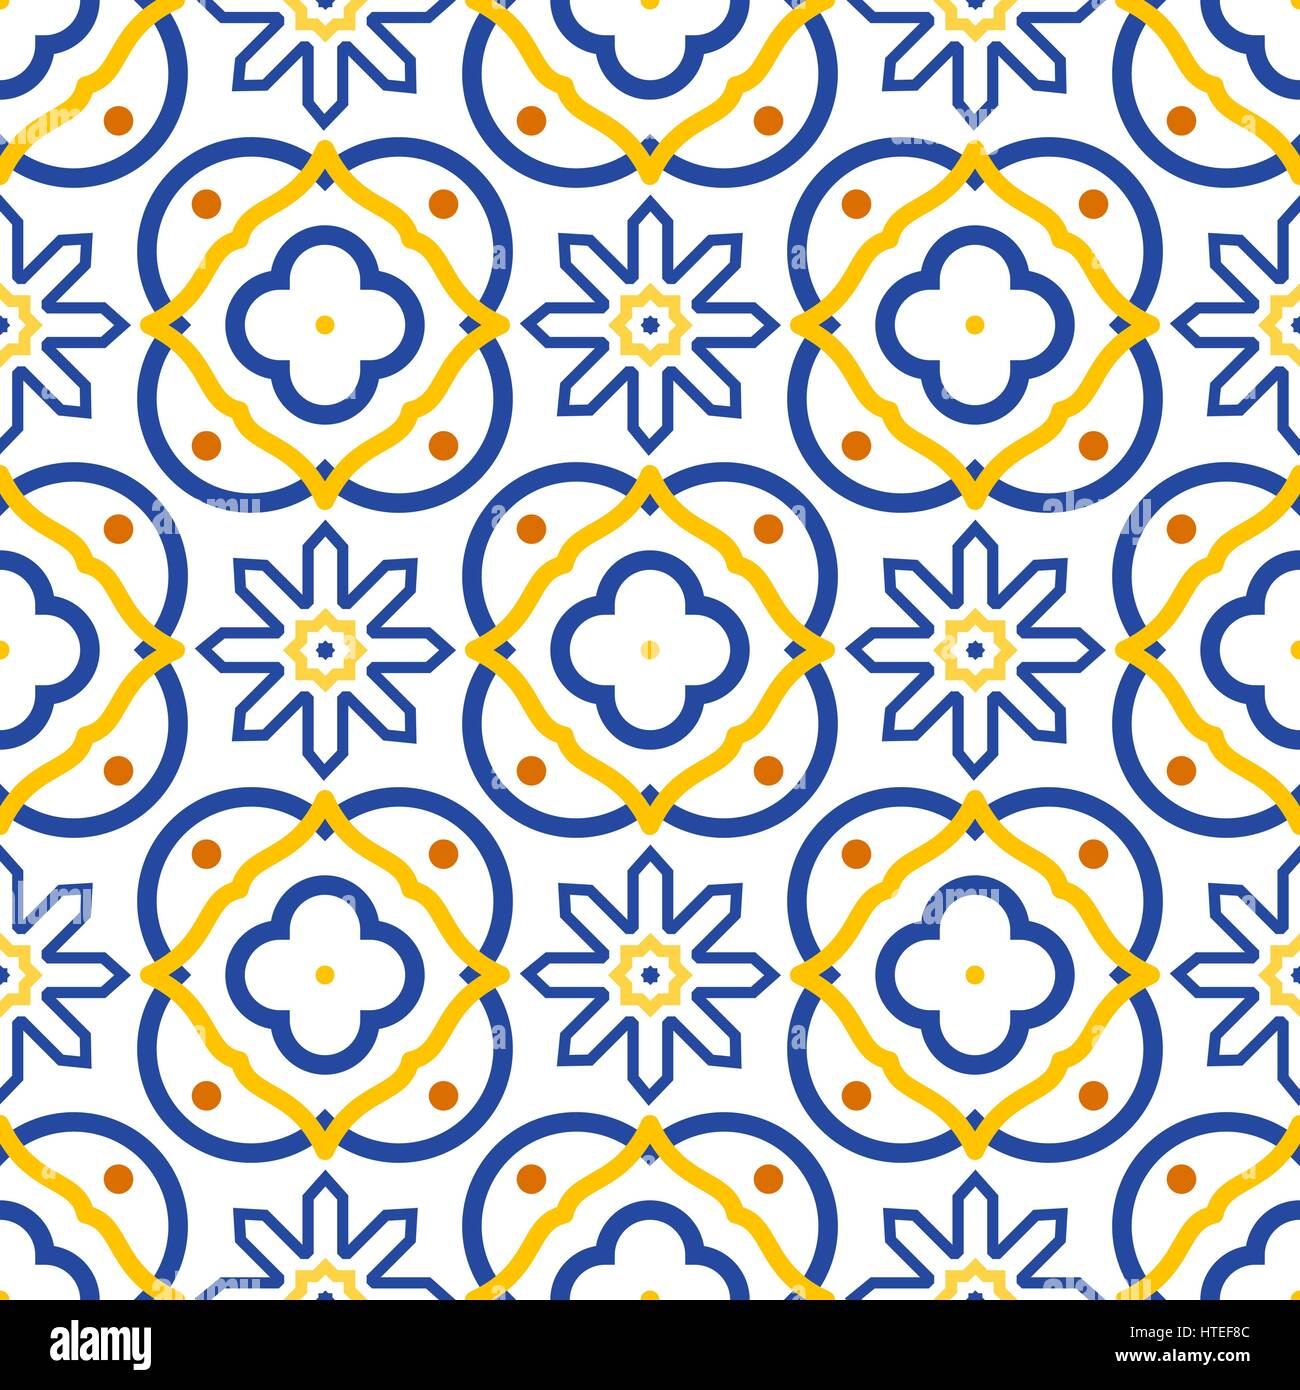 Azulejos blue and white mediterranean seamless tile pattern Stock ...